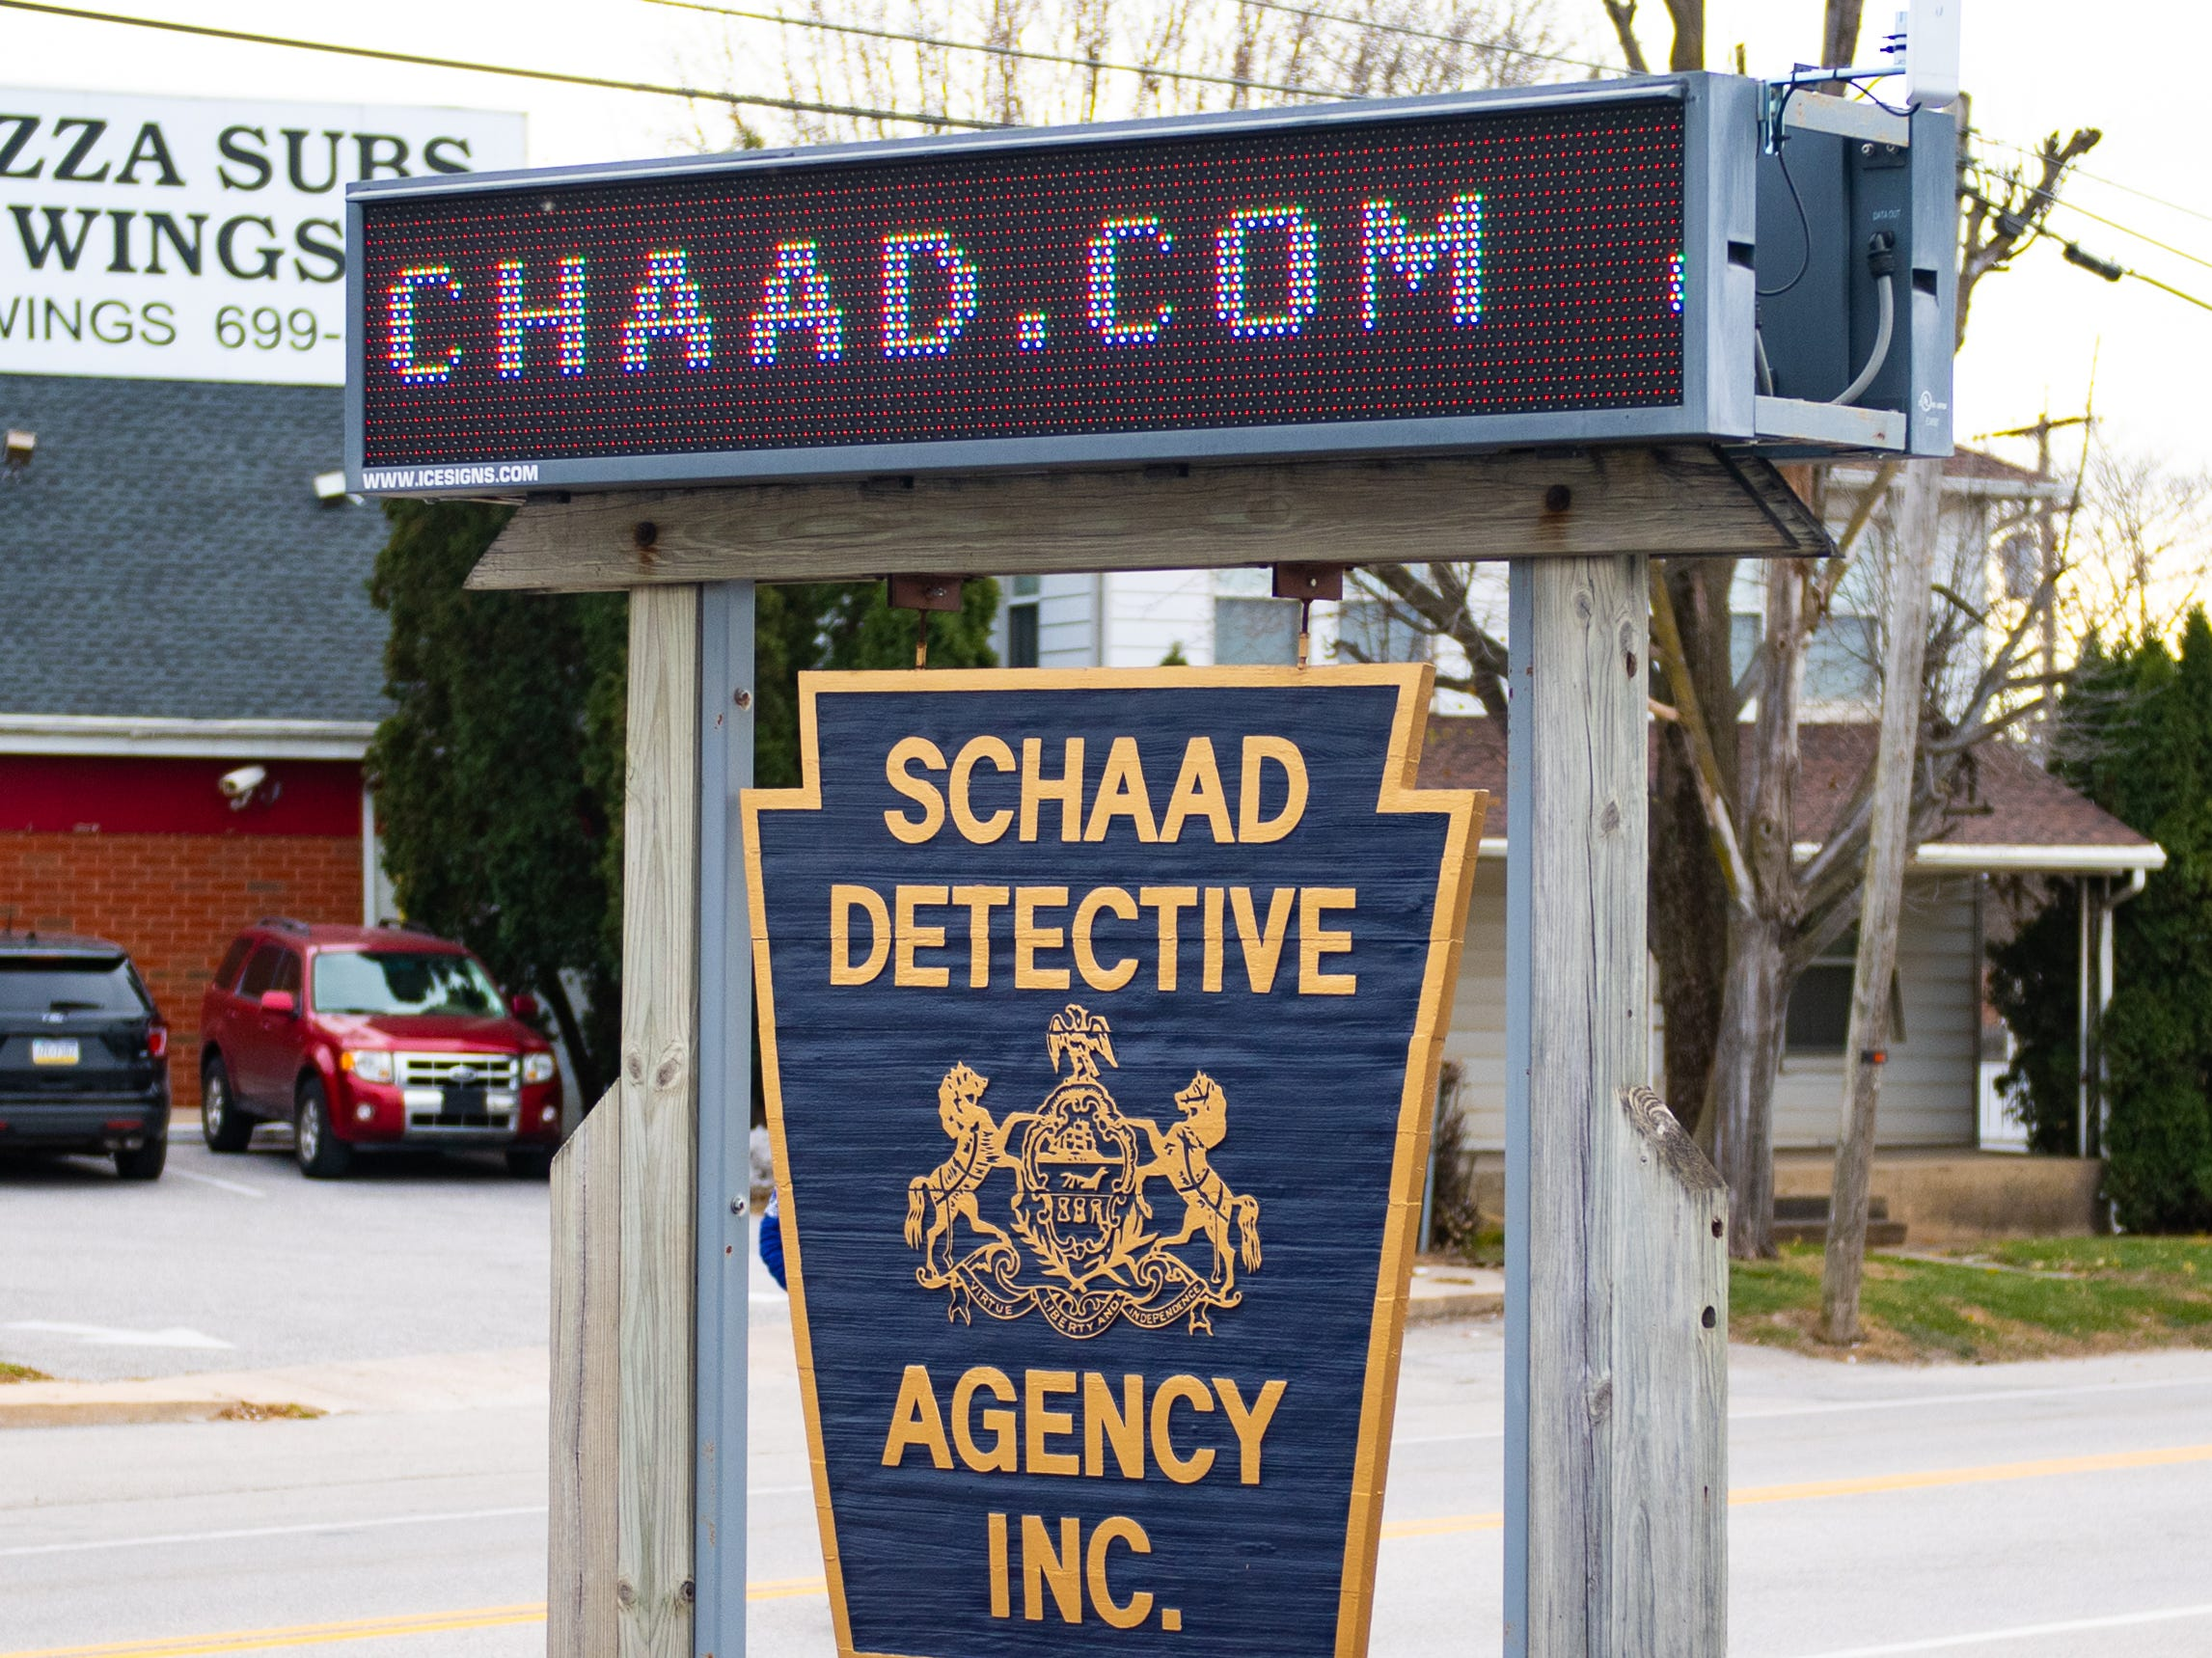 On Black Friday, November 23, 2018, the York County District AttorneyÕs Office held its Fall, 2018 Drug Task Force Auction at Schaad Detective Agency.